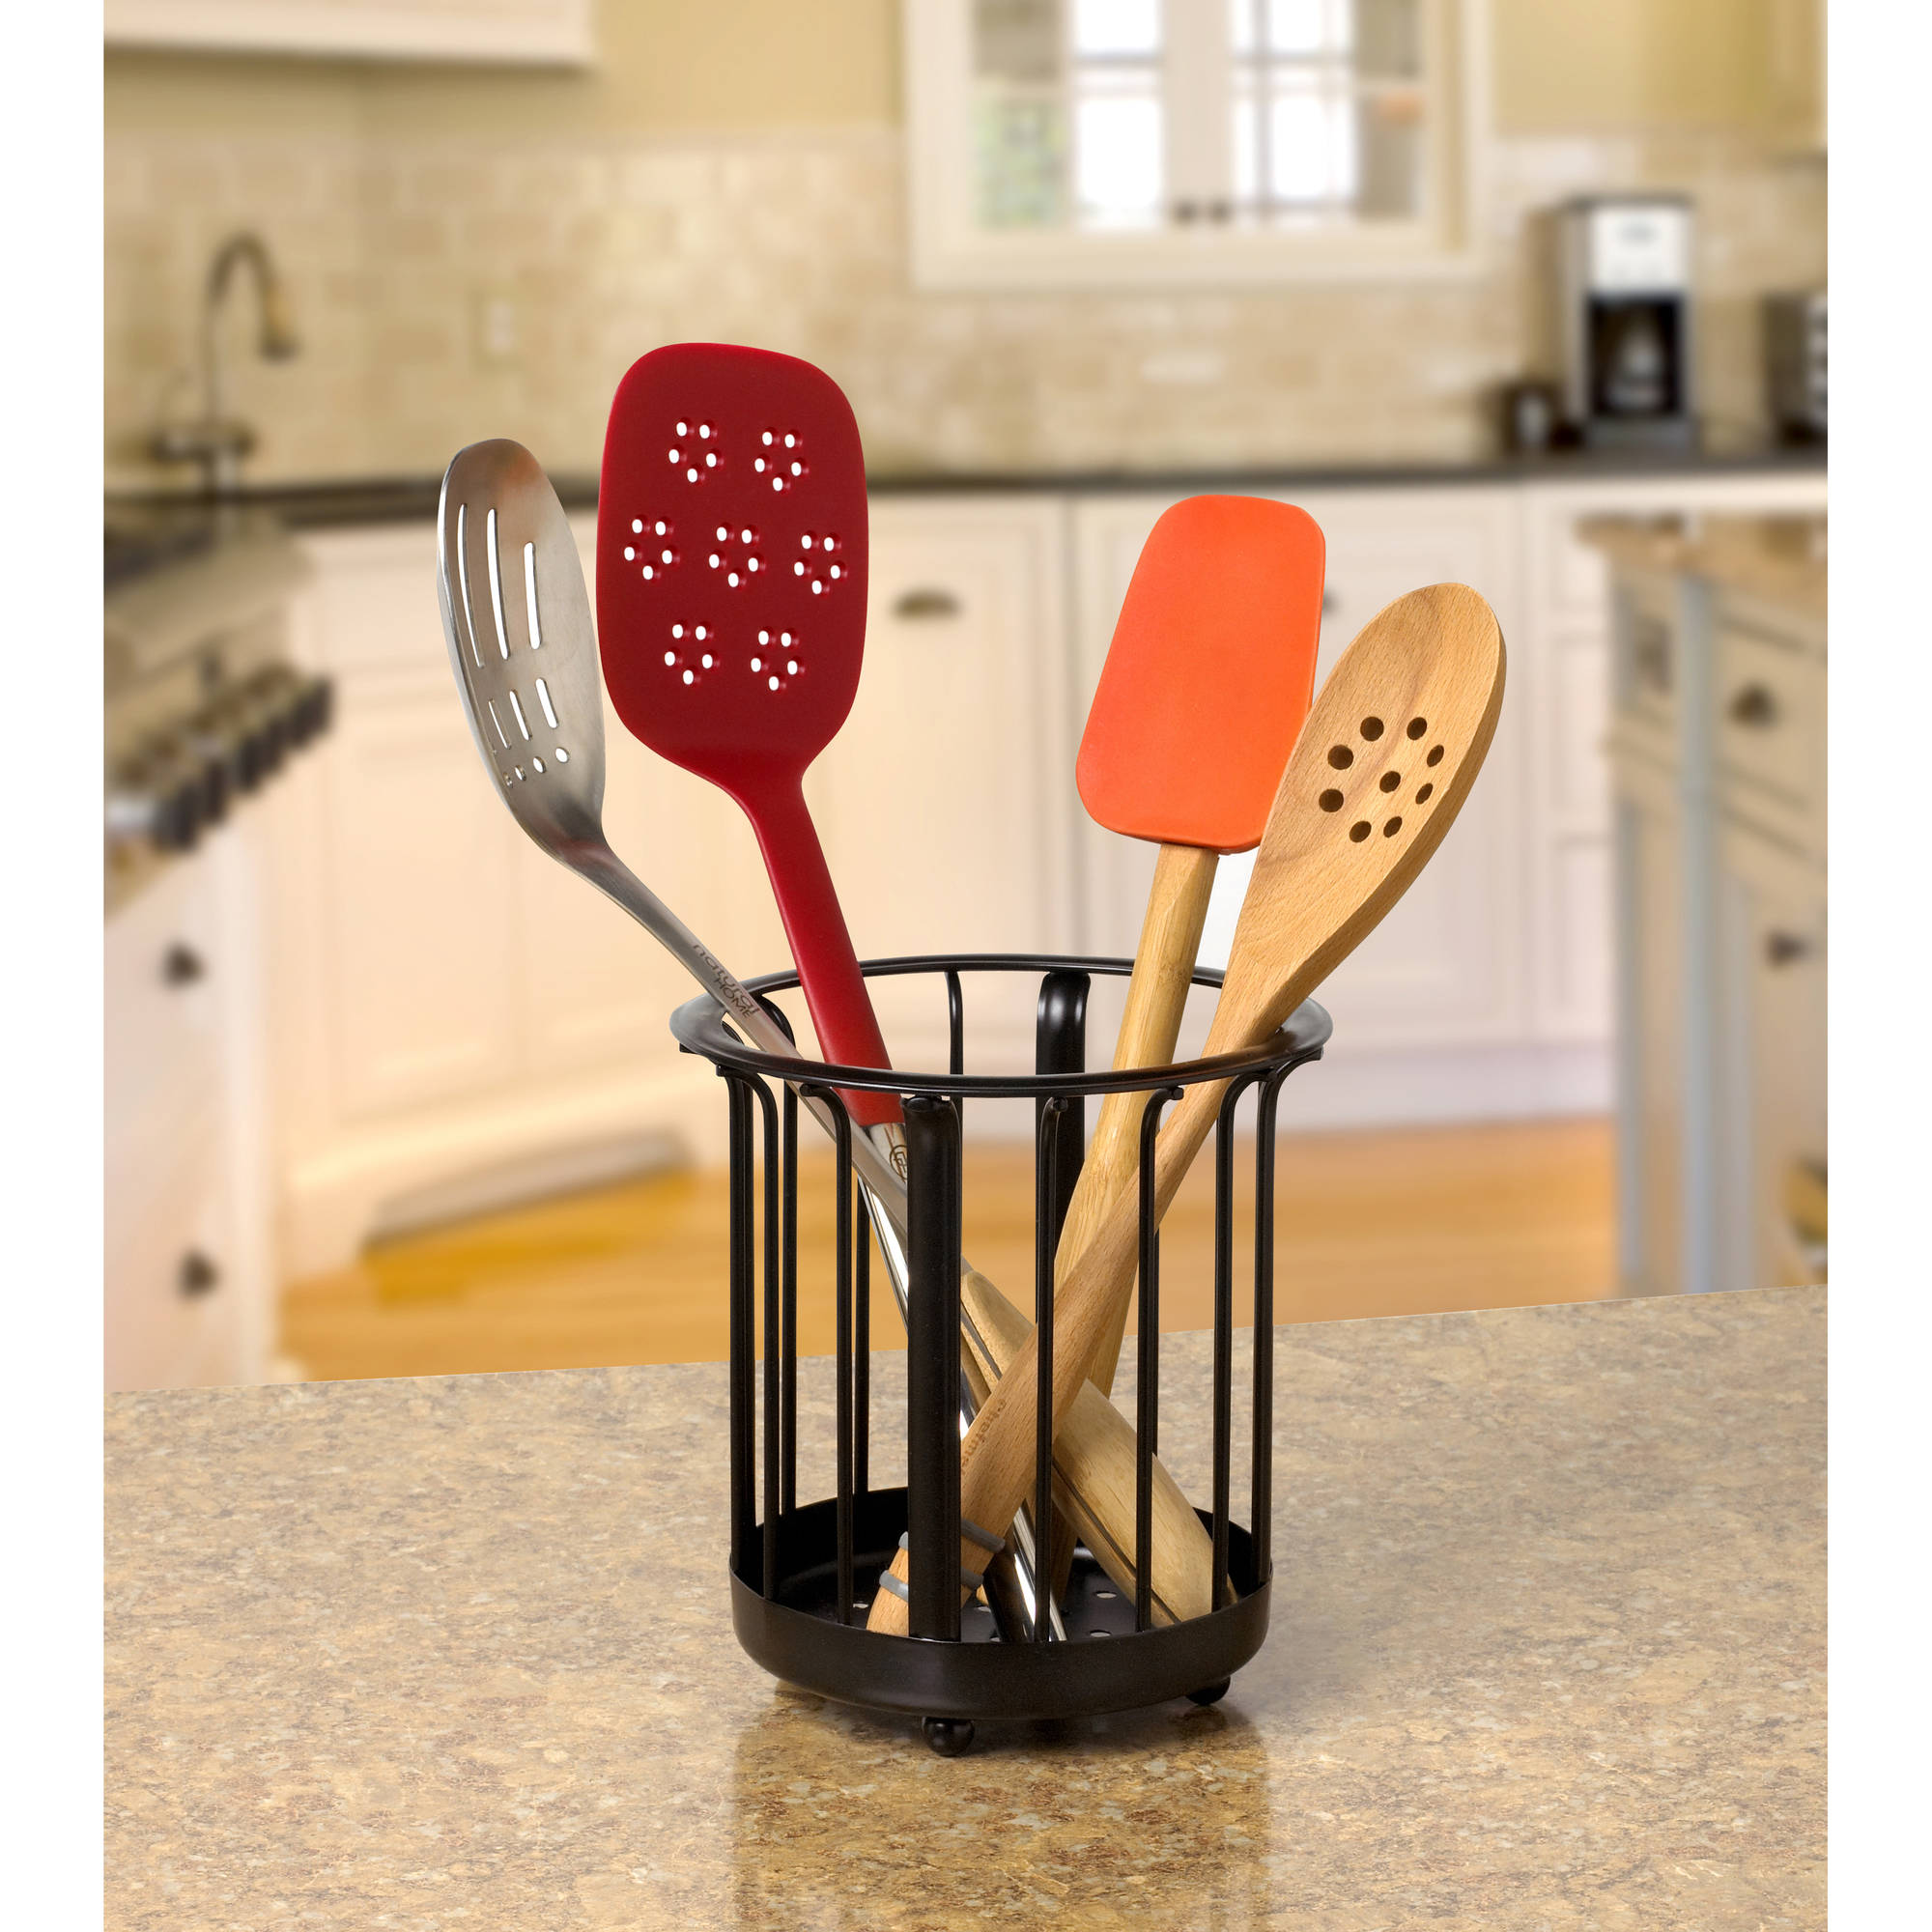 Spectrum Ashley Utensil Holder, Black